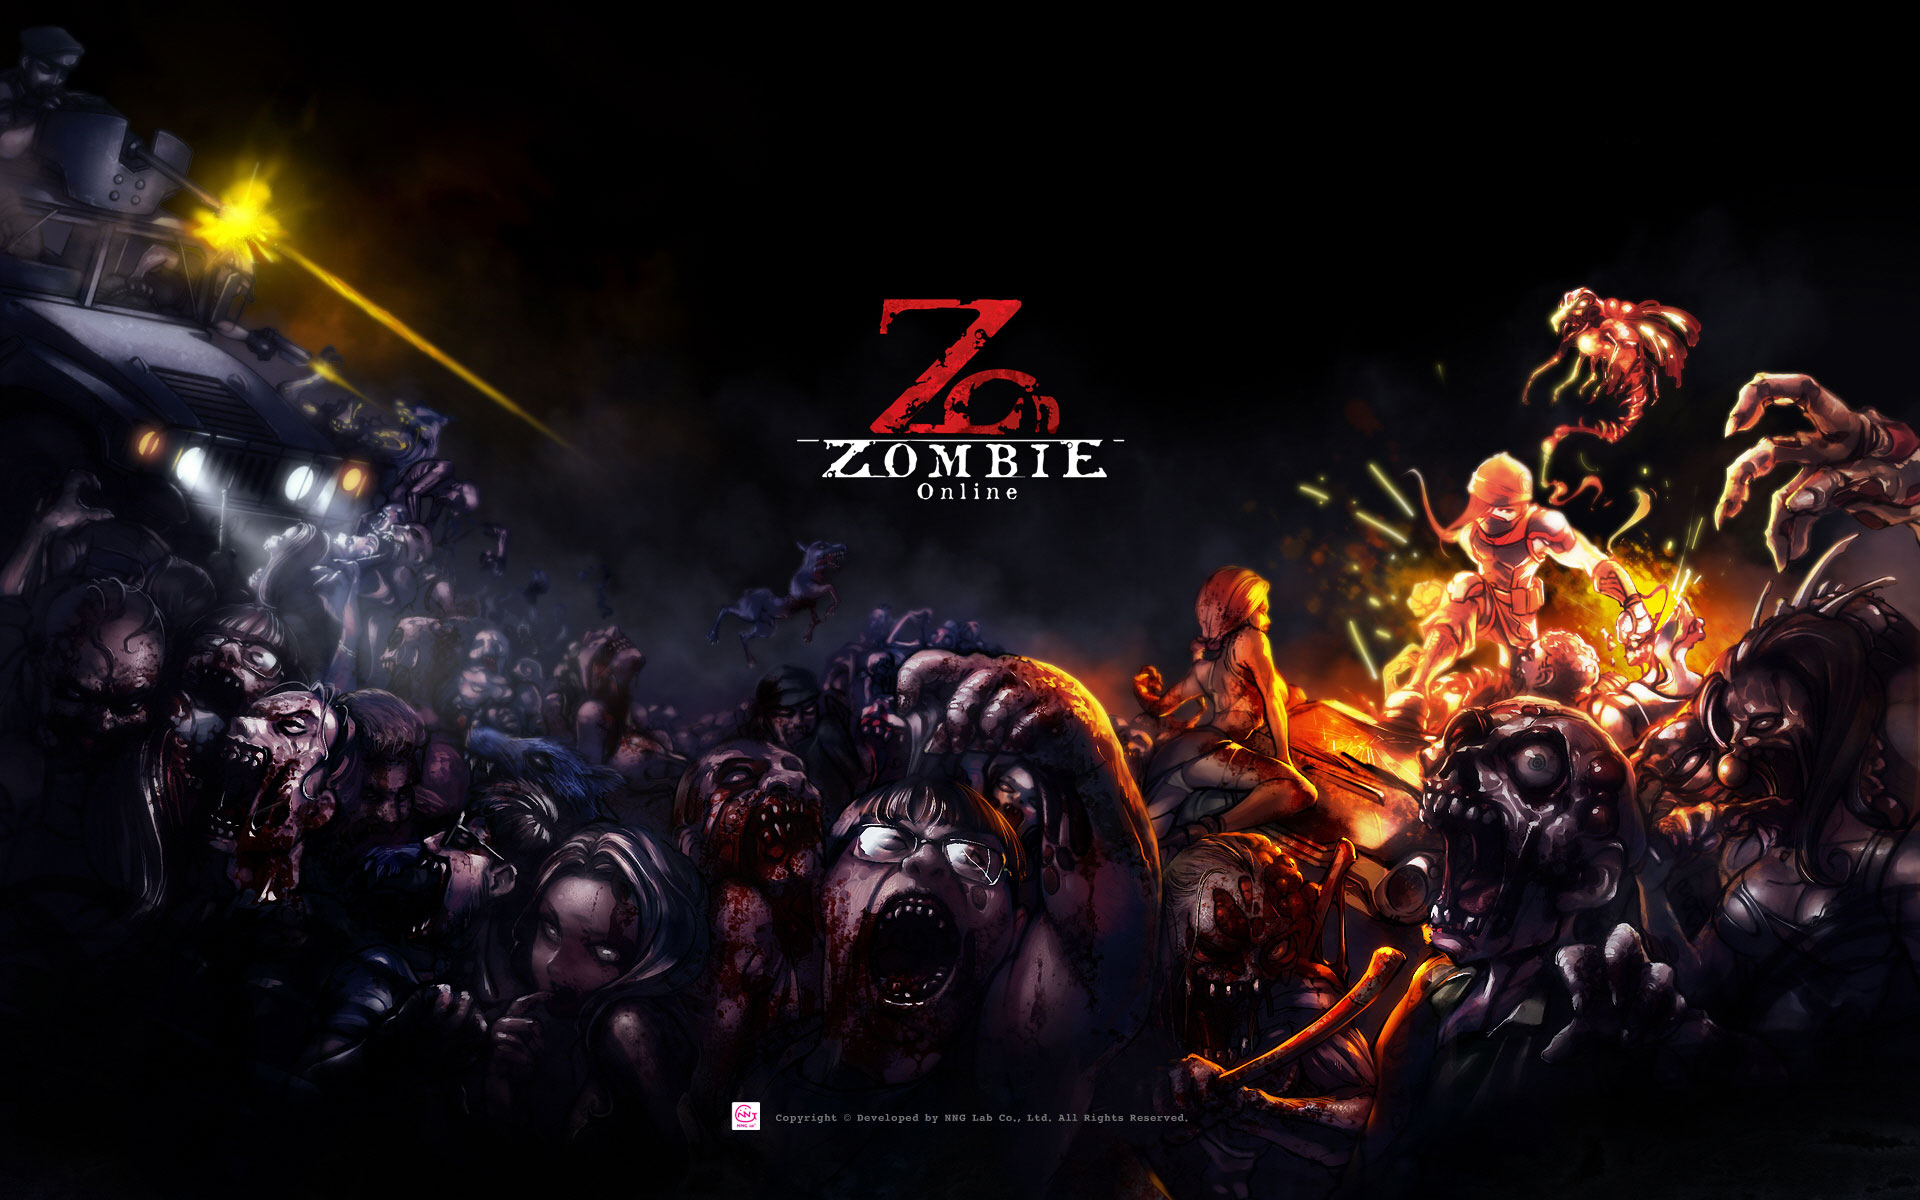 Hd wallpaper zombie - Zombie Online Wallpapers Hd Wallpapers